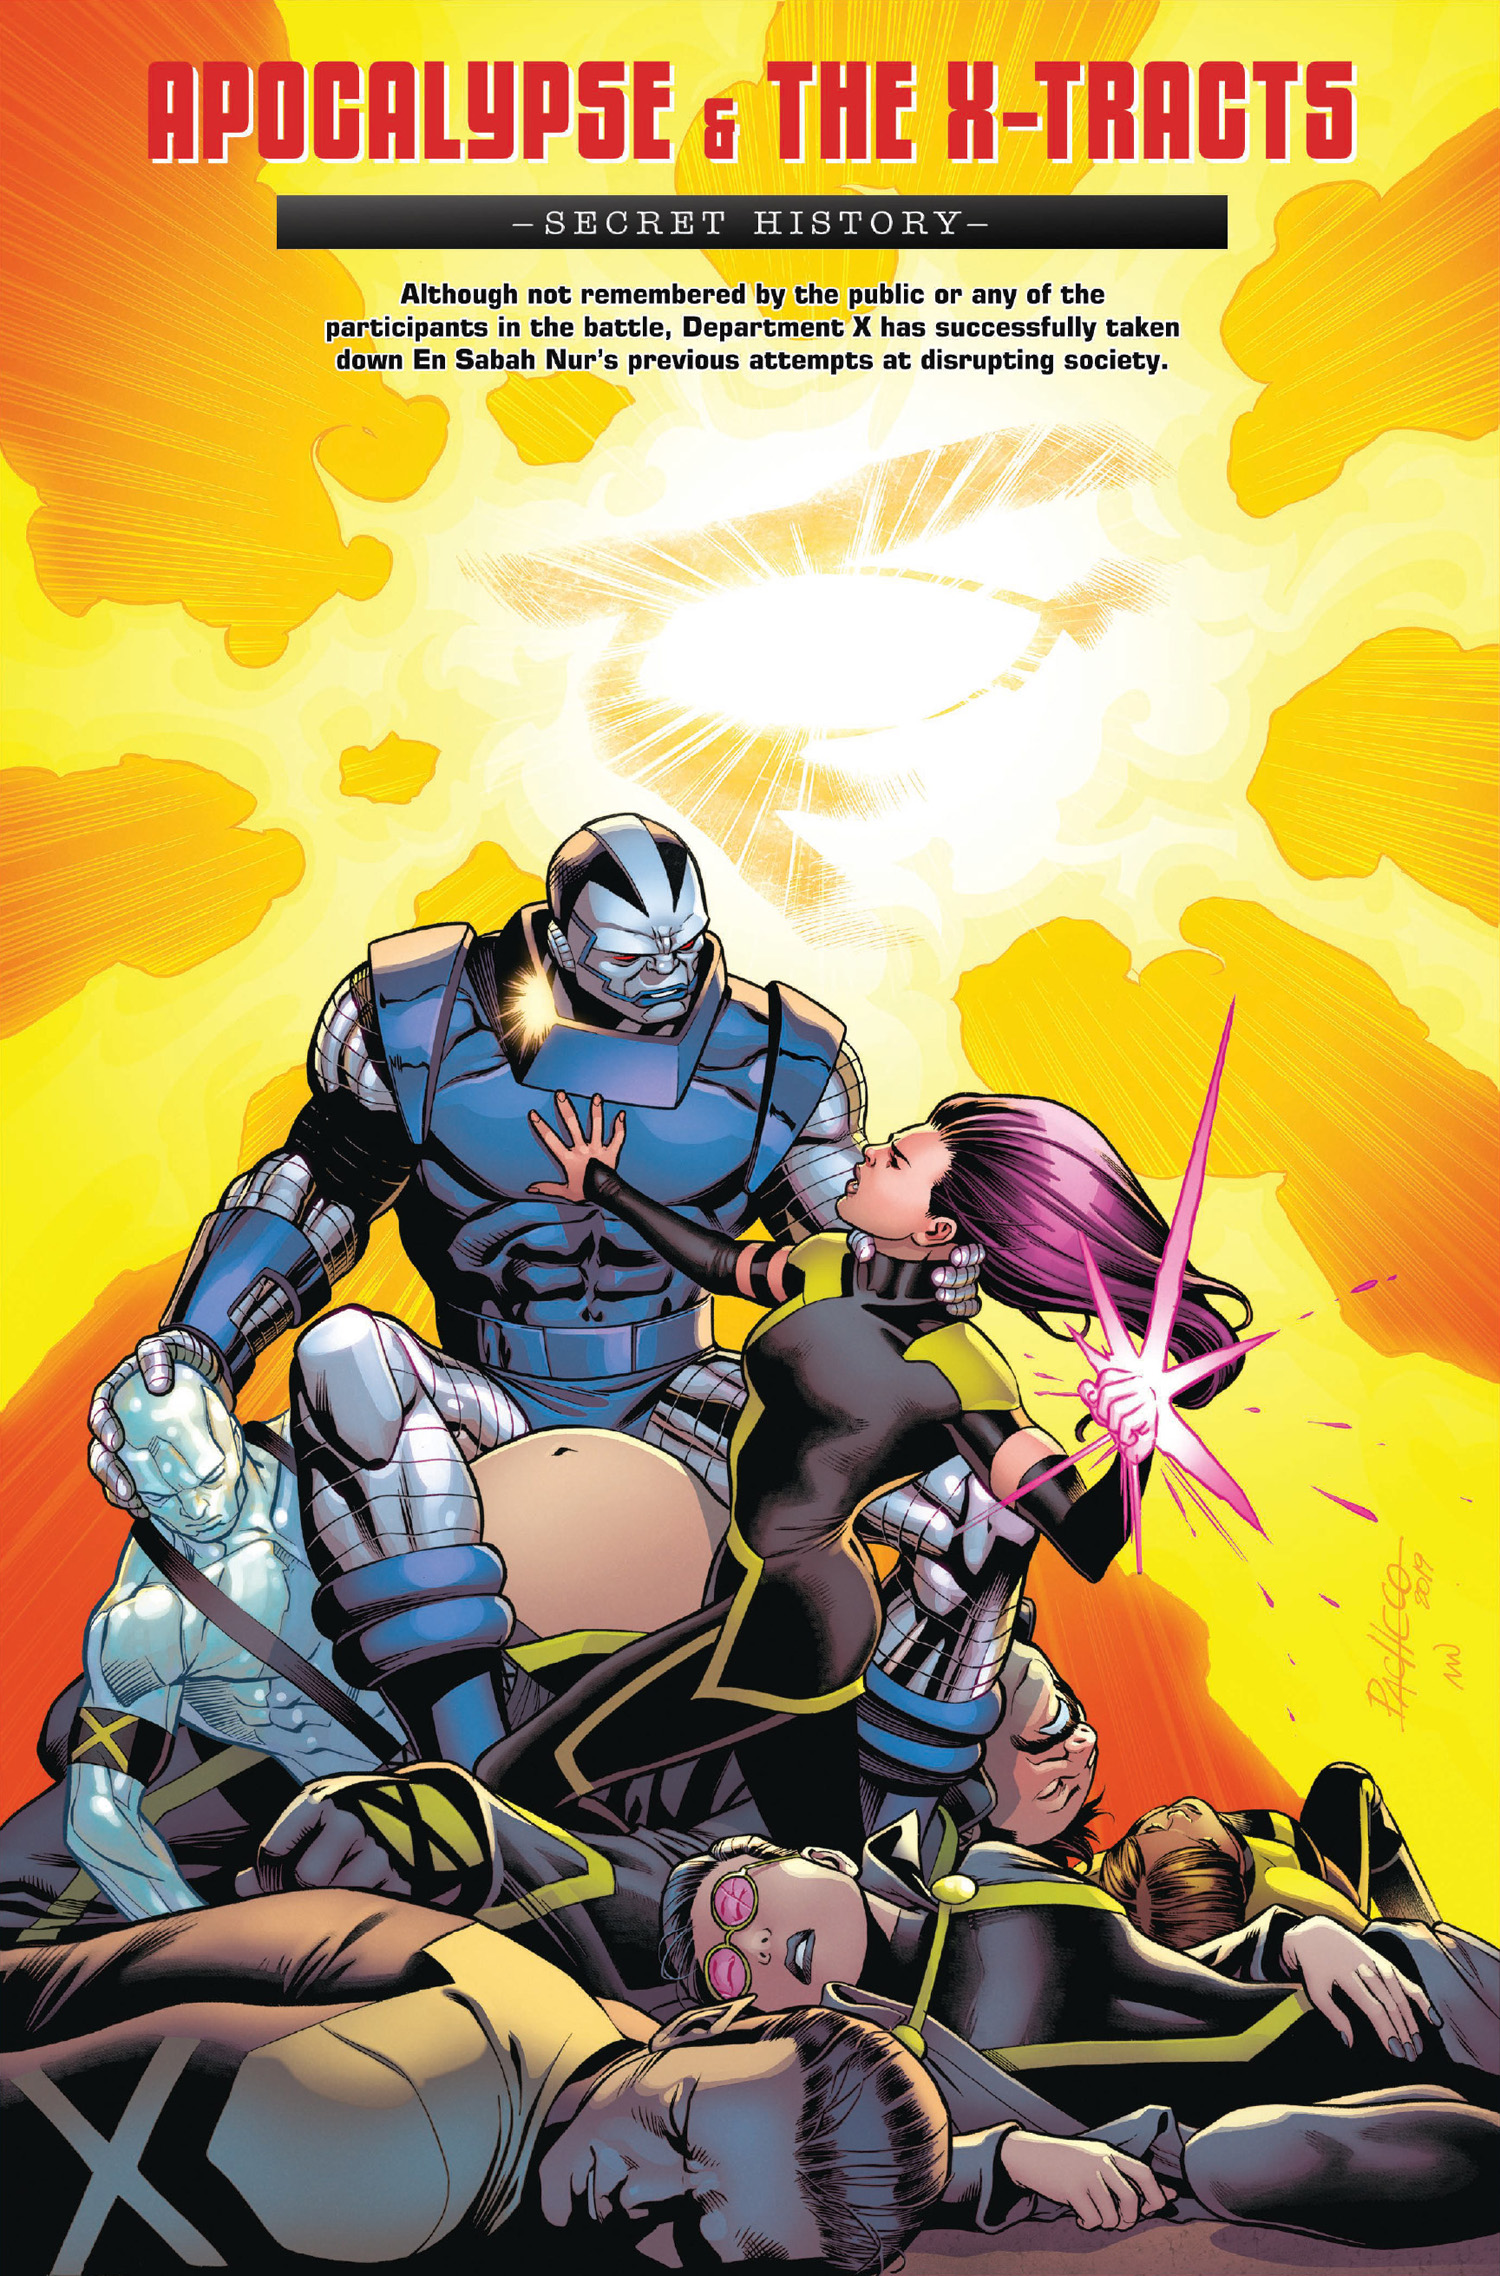 Age of X-Man Apocalypse & the X-Tracts Vol 1 1 Secret Variant Textless.jpg